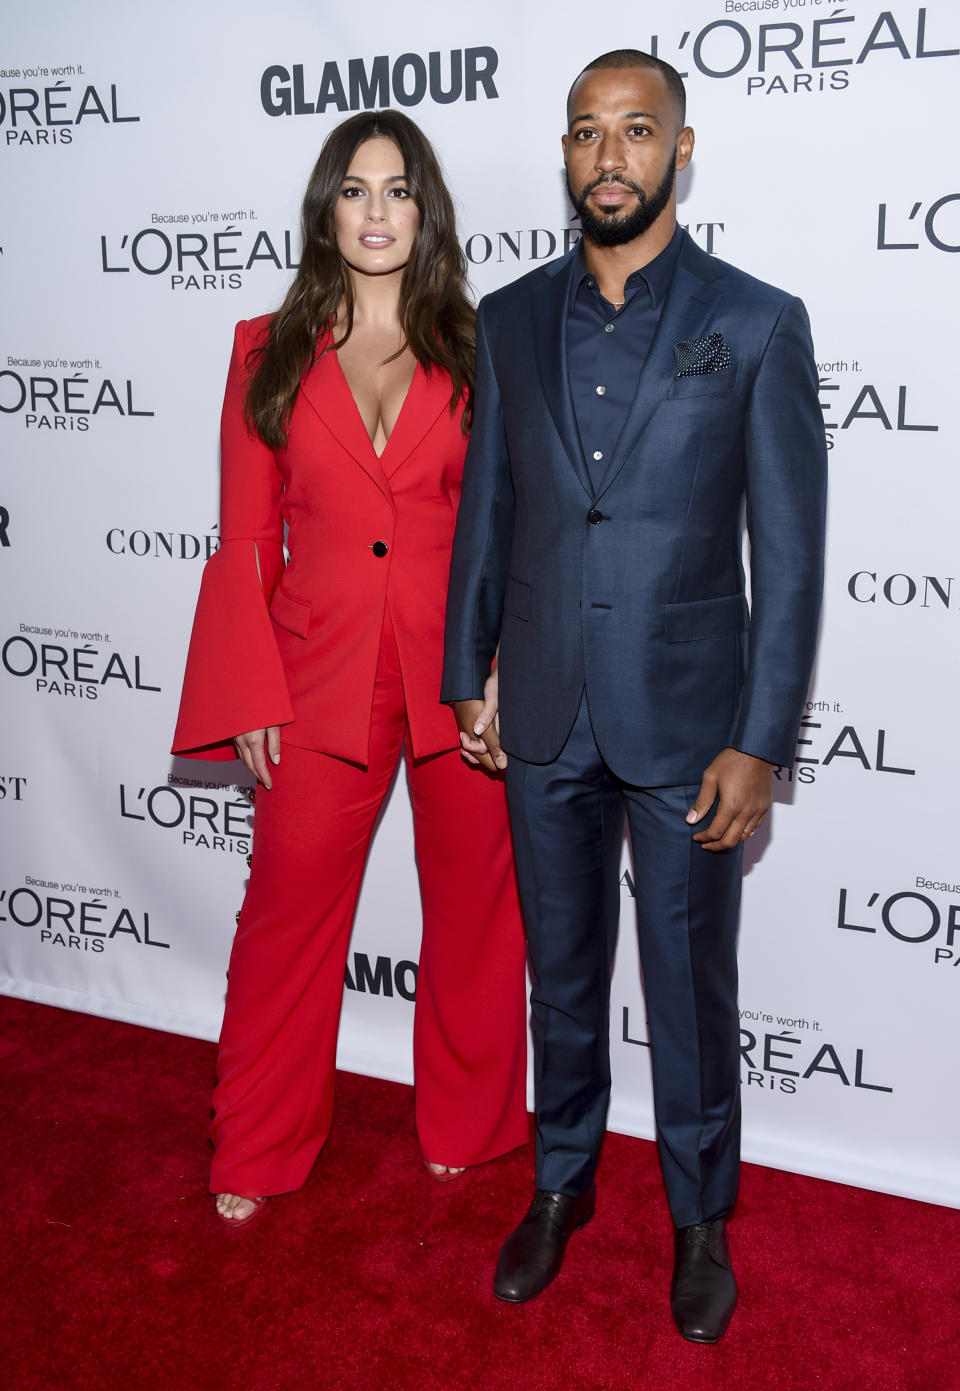 Ashley Graham, left, and husband Justin Ervin attend the 2017 Glamour Women of the Year Awards at Kings Theatre on Monday, Nov. 13, 2017, in New York. (Photo by Evan Agostini/Invision/AP)